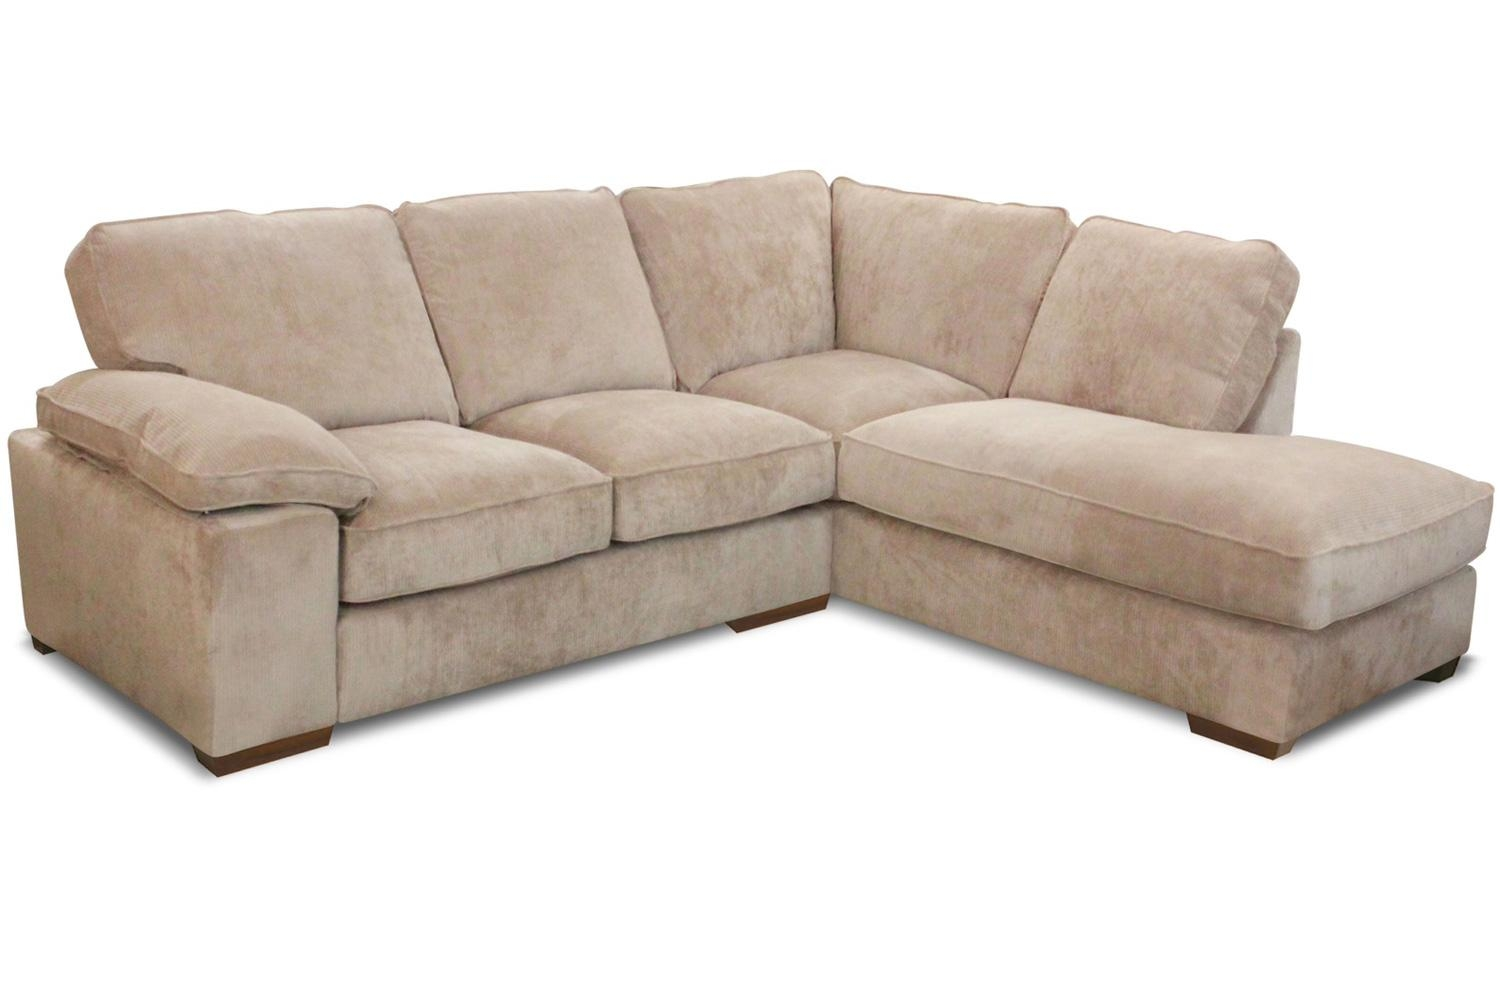 Harveys Furniture Sale Sofa Beds Intended For Corner Sofa Beds (Image 12 of 20)